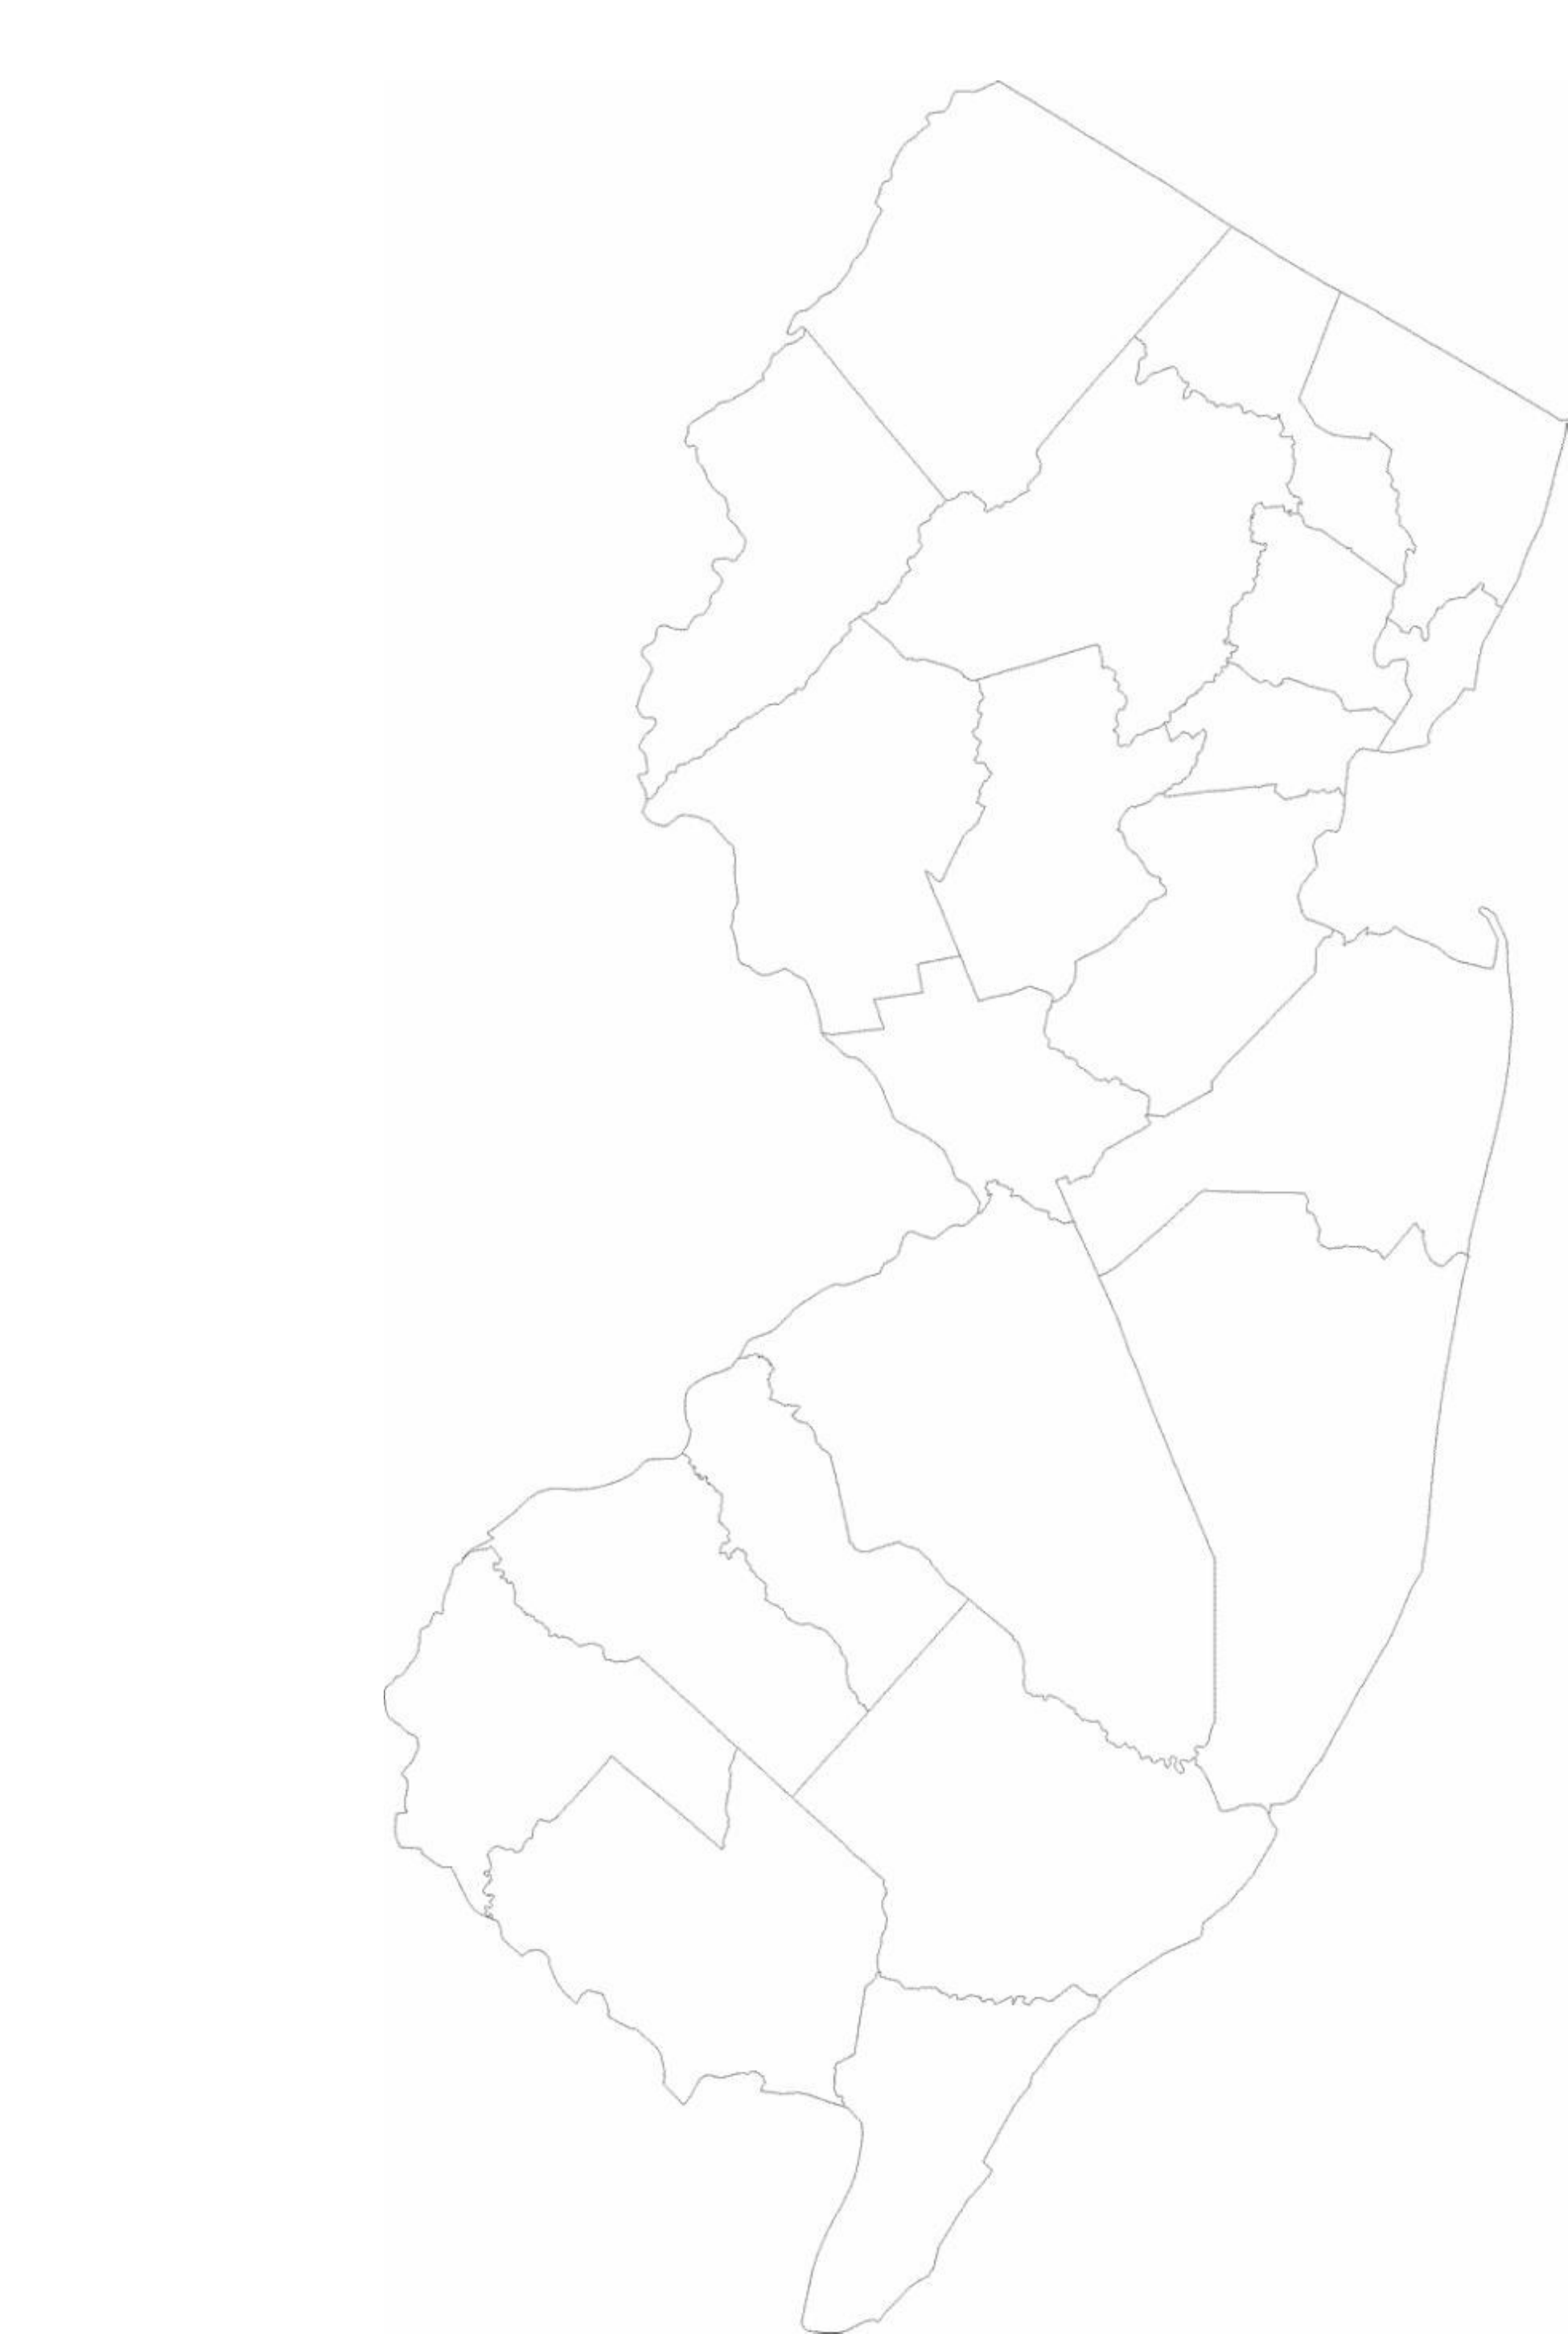 Blank New Jersey County Map Free Download